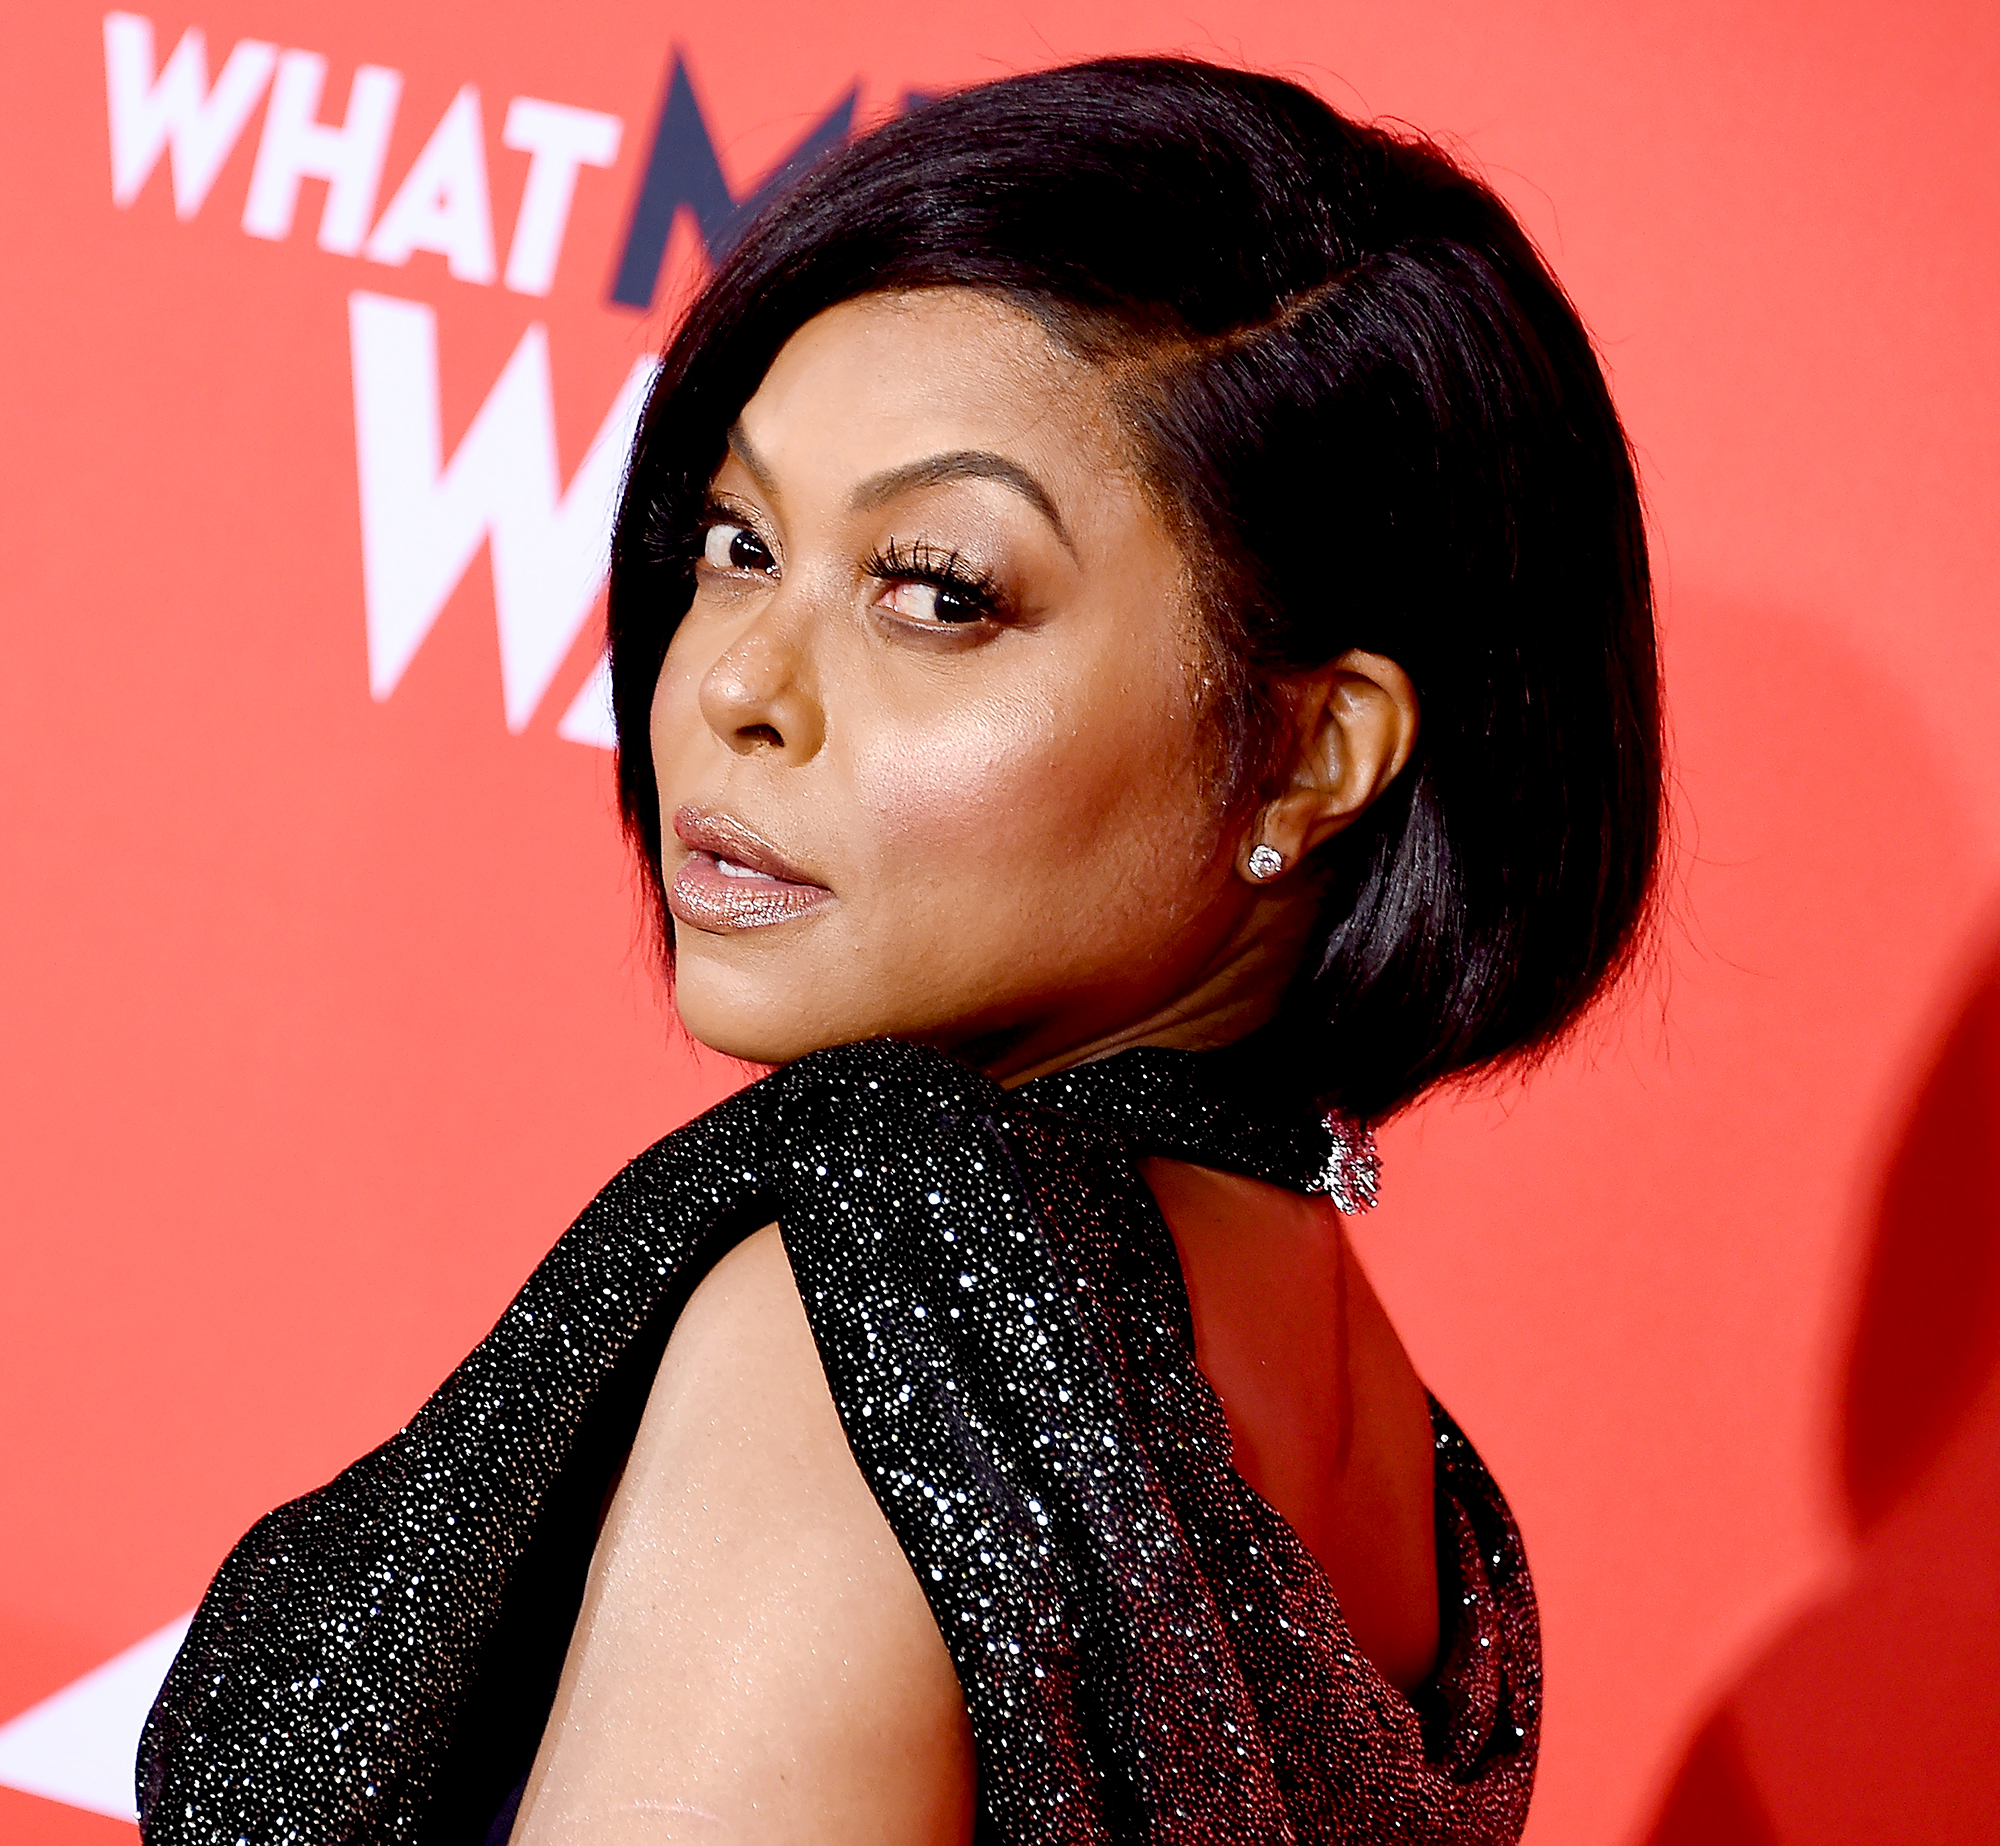 Taraji-P.-Henson-Reveals-She-Suffers-From-Depression-and-Anxiety